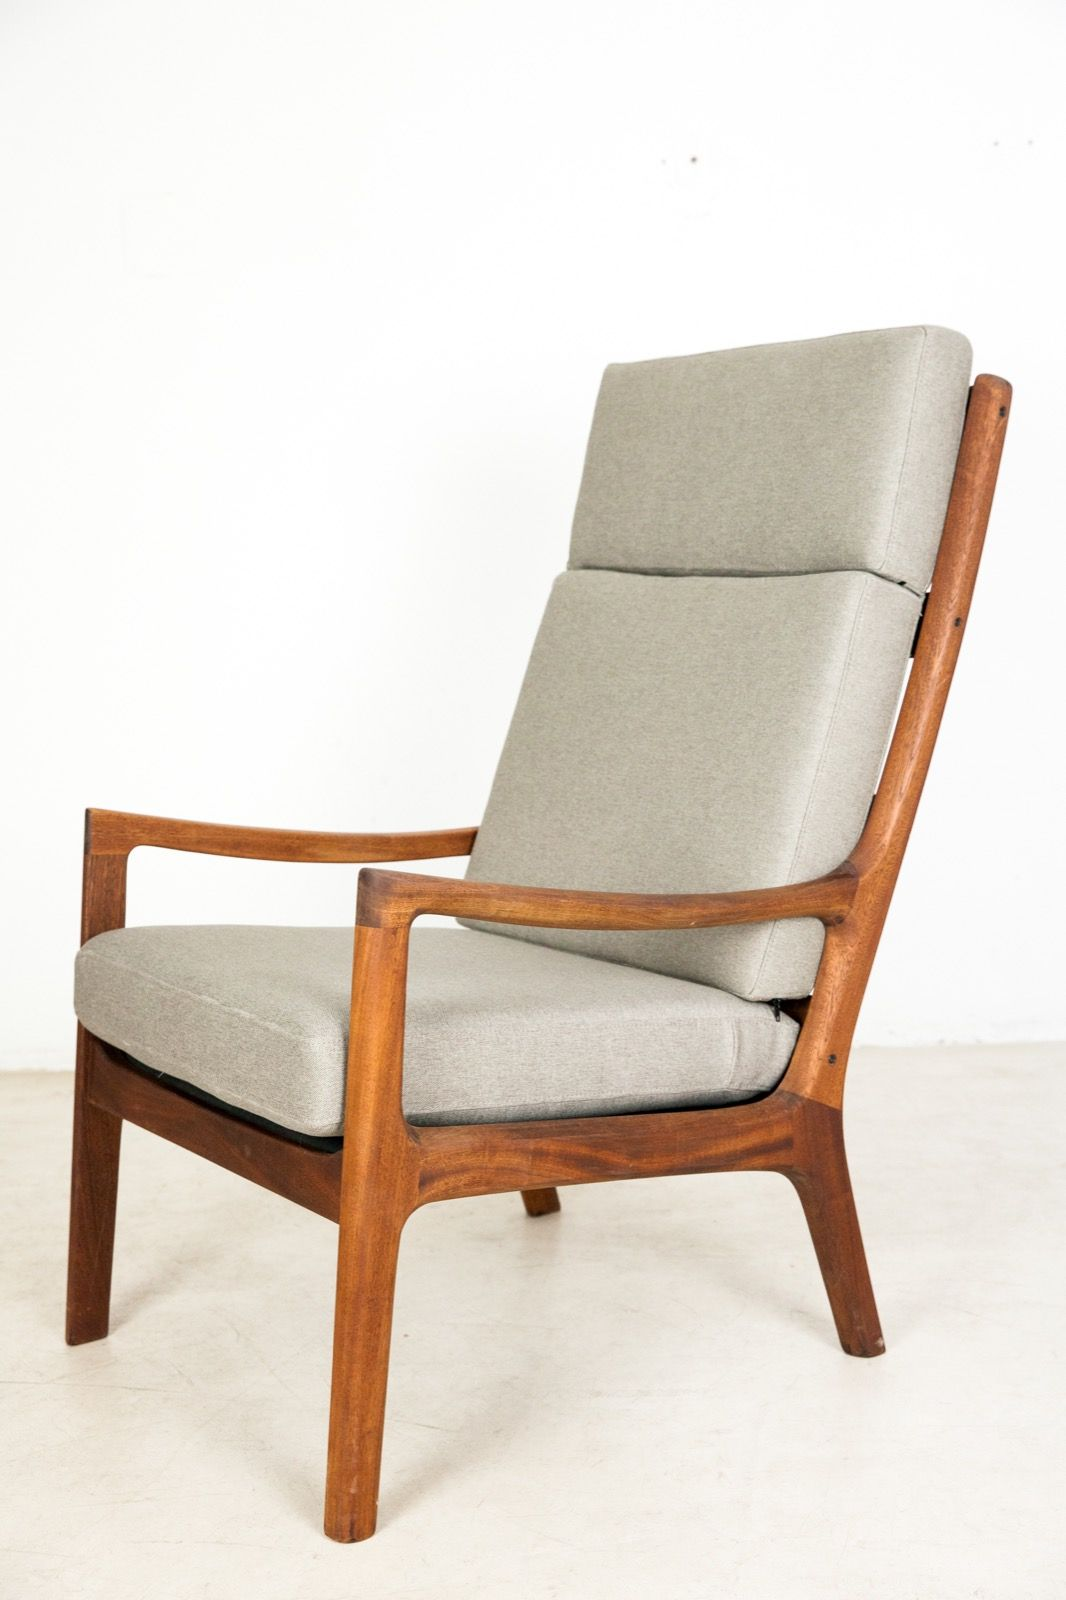 Perfectly Restored Mahogany Armchair by Ole Wanscher - Studio Fabrika